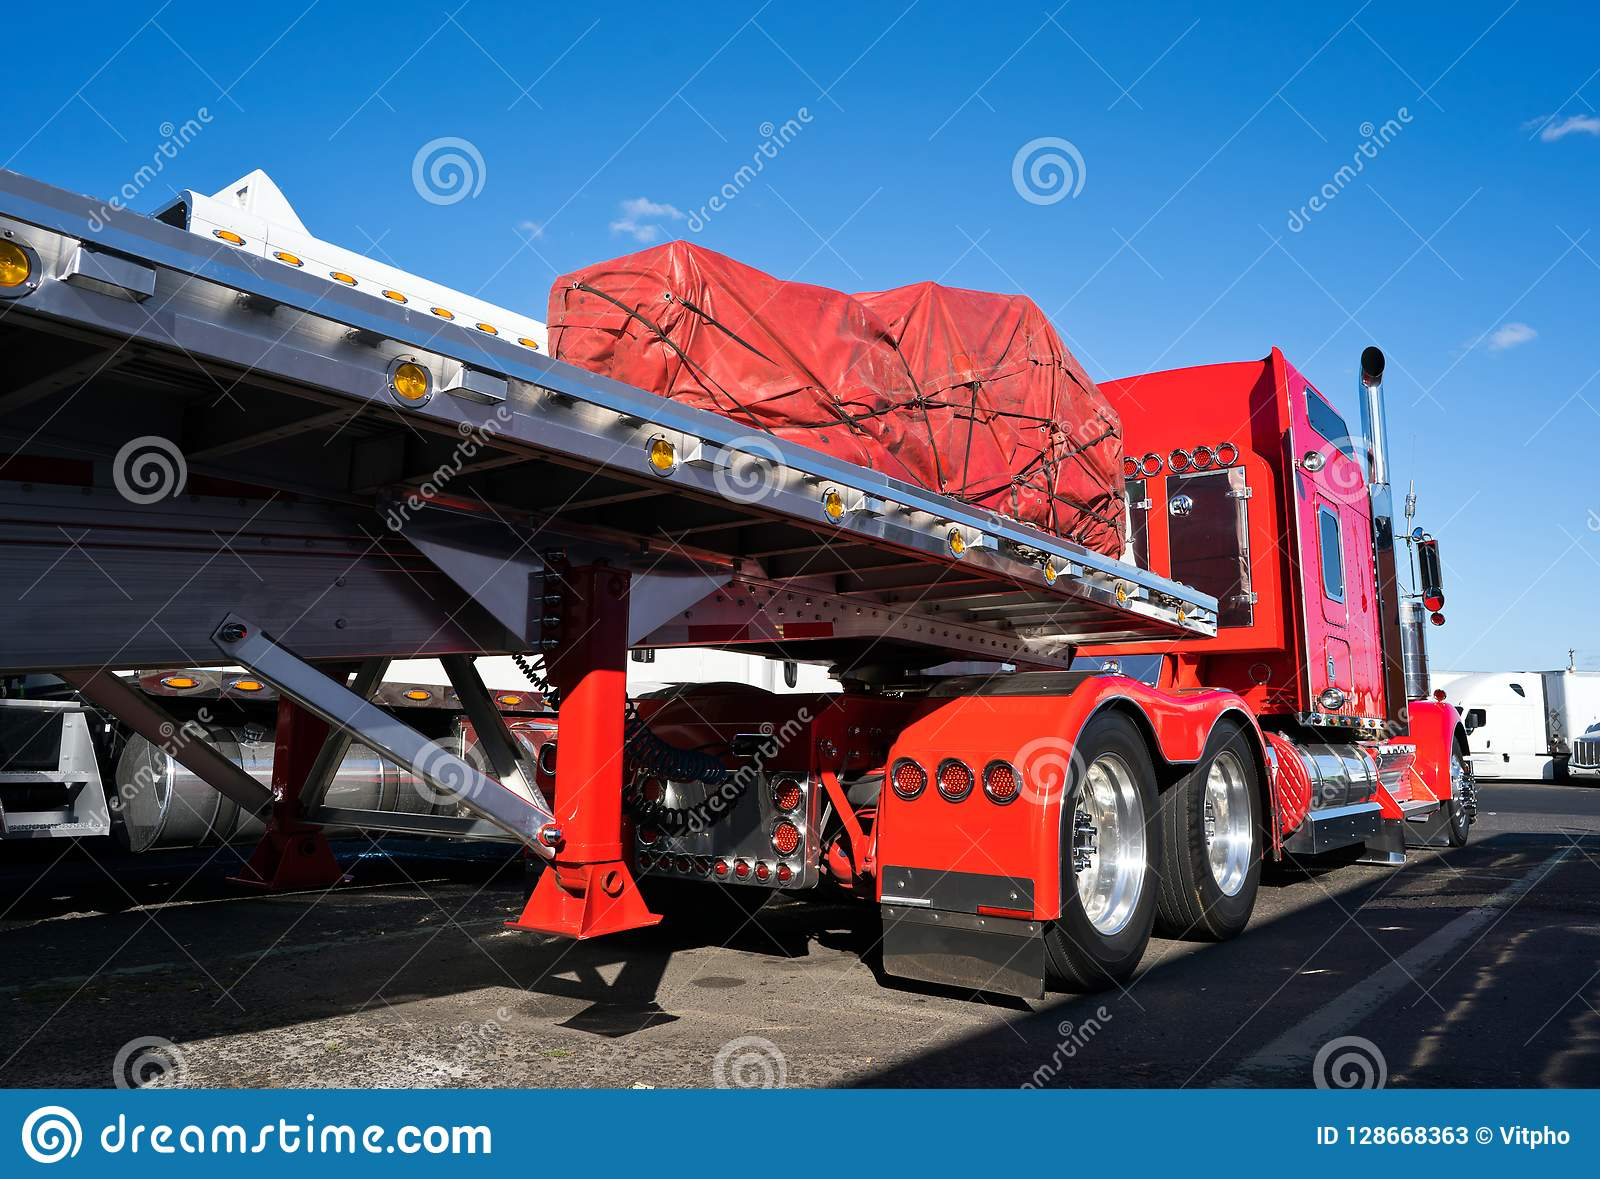 Classic Bright Red American Big Rig Semi Truck With Flat Bed Semi Trailer Standing On The Truck Stop With Covered Cargo Stock Image Image Of Delivering Fleet 128668363